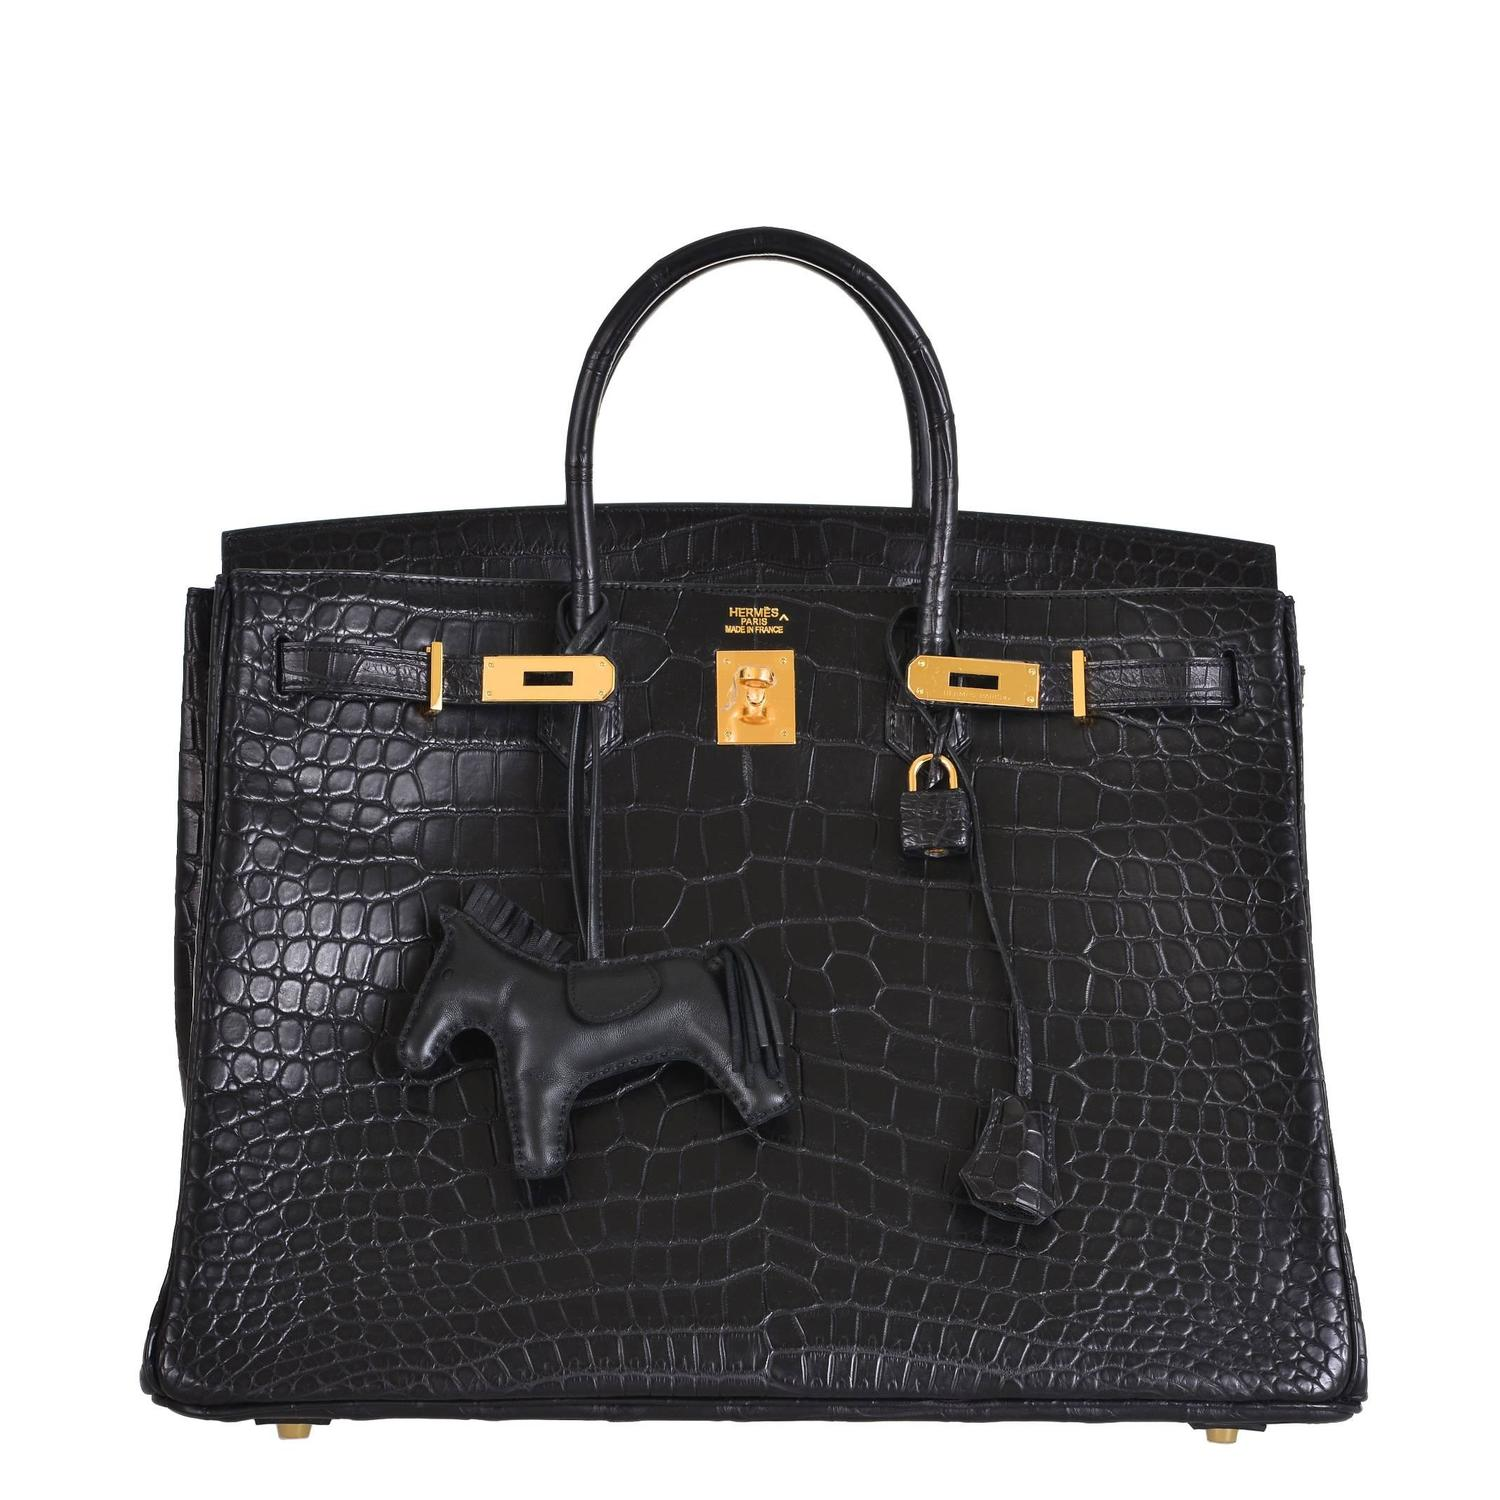 hermes birkin bag 40cm black matte crocodile porosus gold hardware janefinds